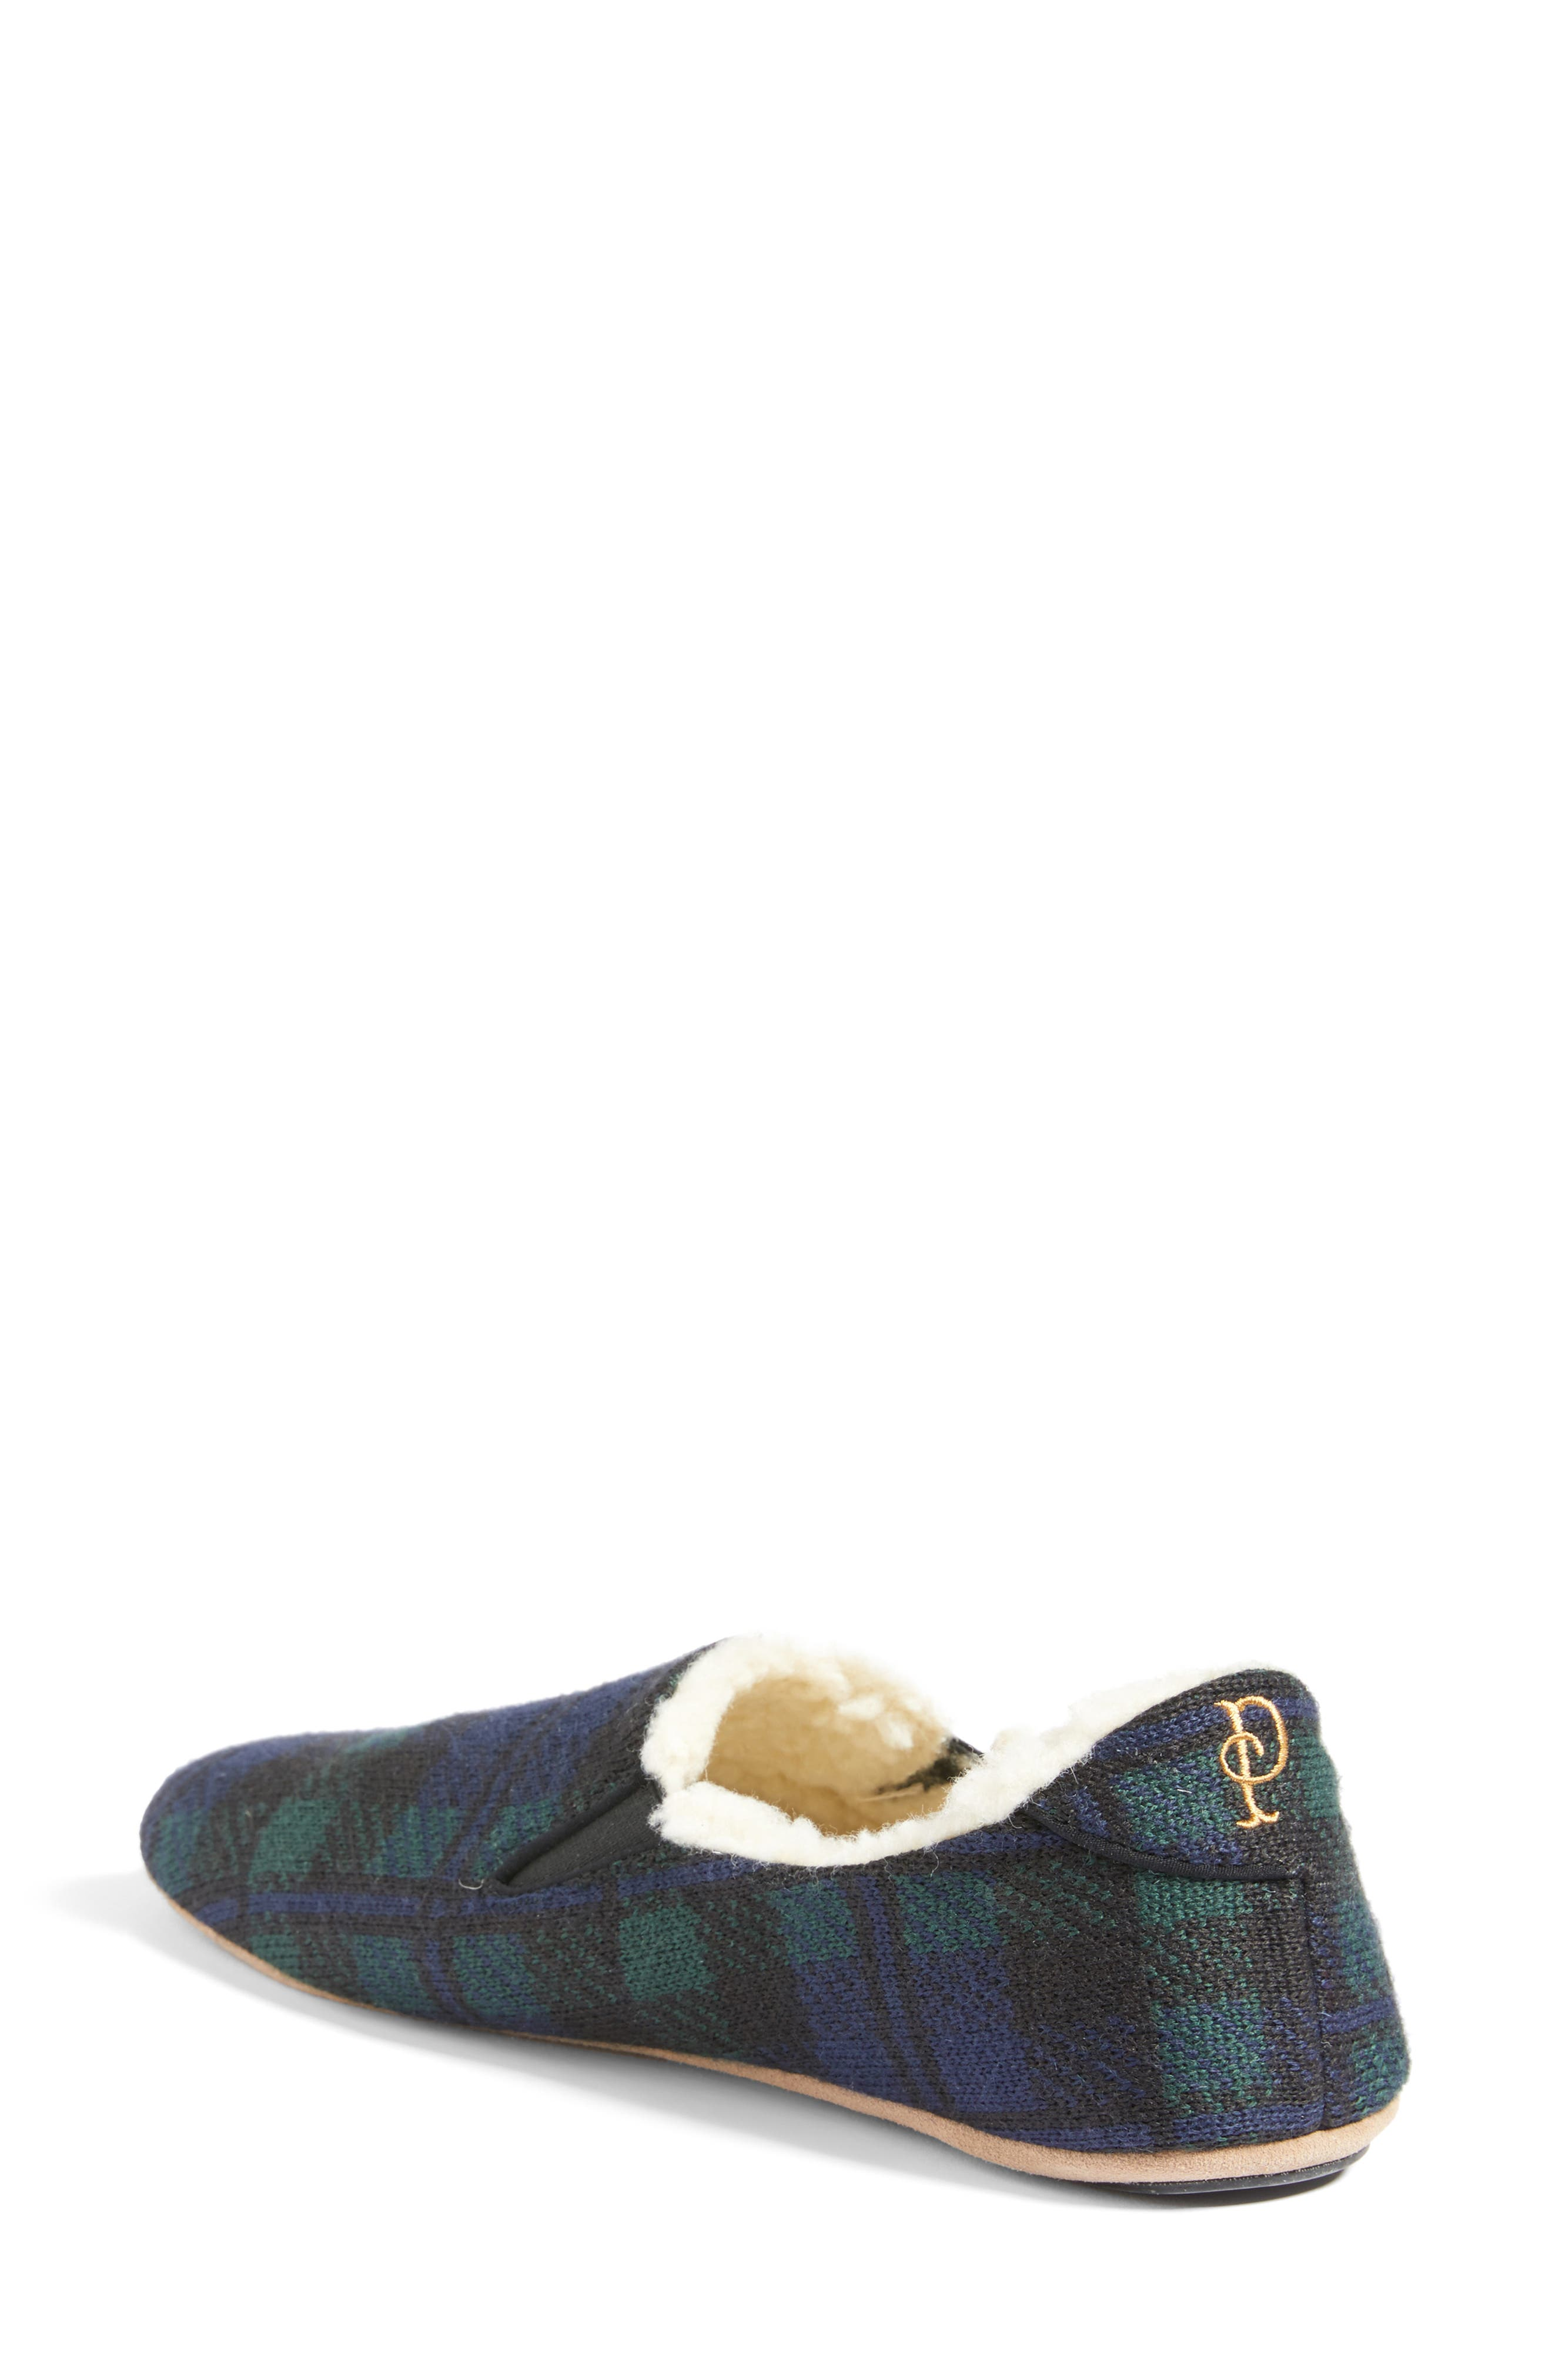 Black Watch Plaid Nomad Slippers,                             Alternate thumbnail 2, color,                             Navy